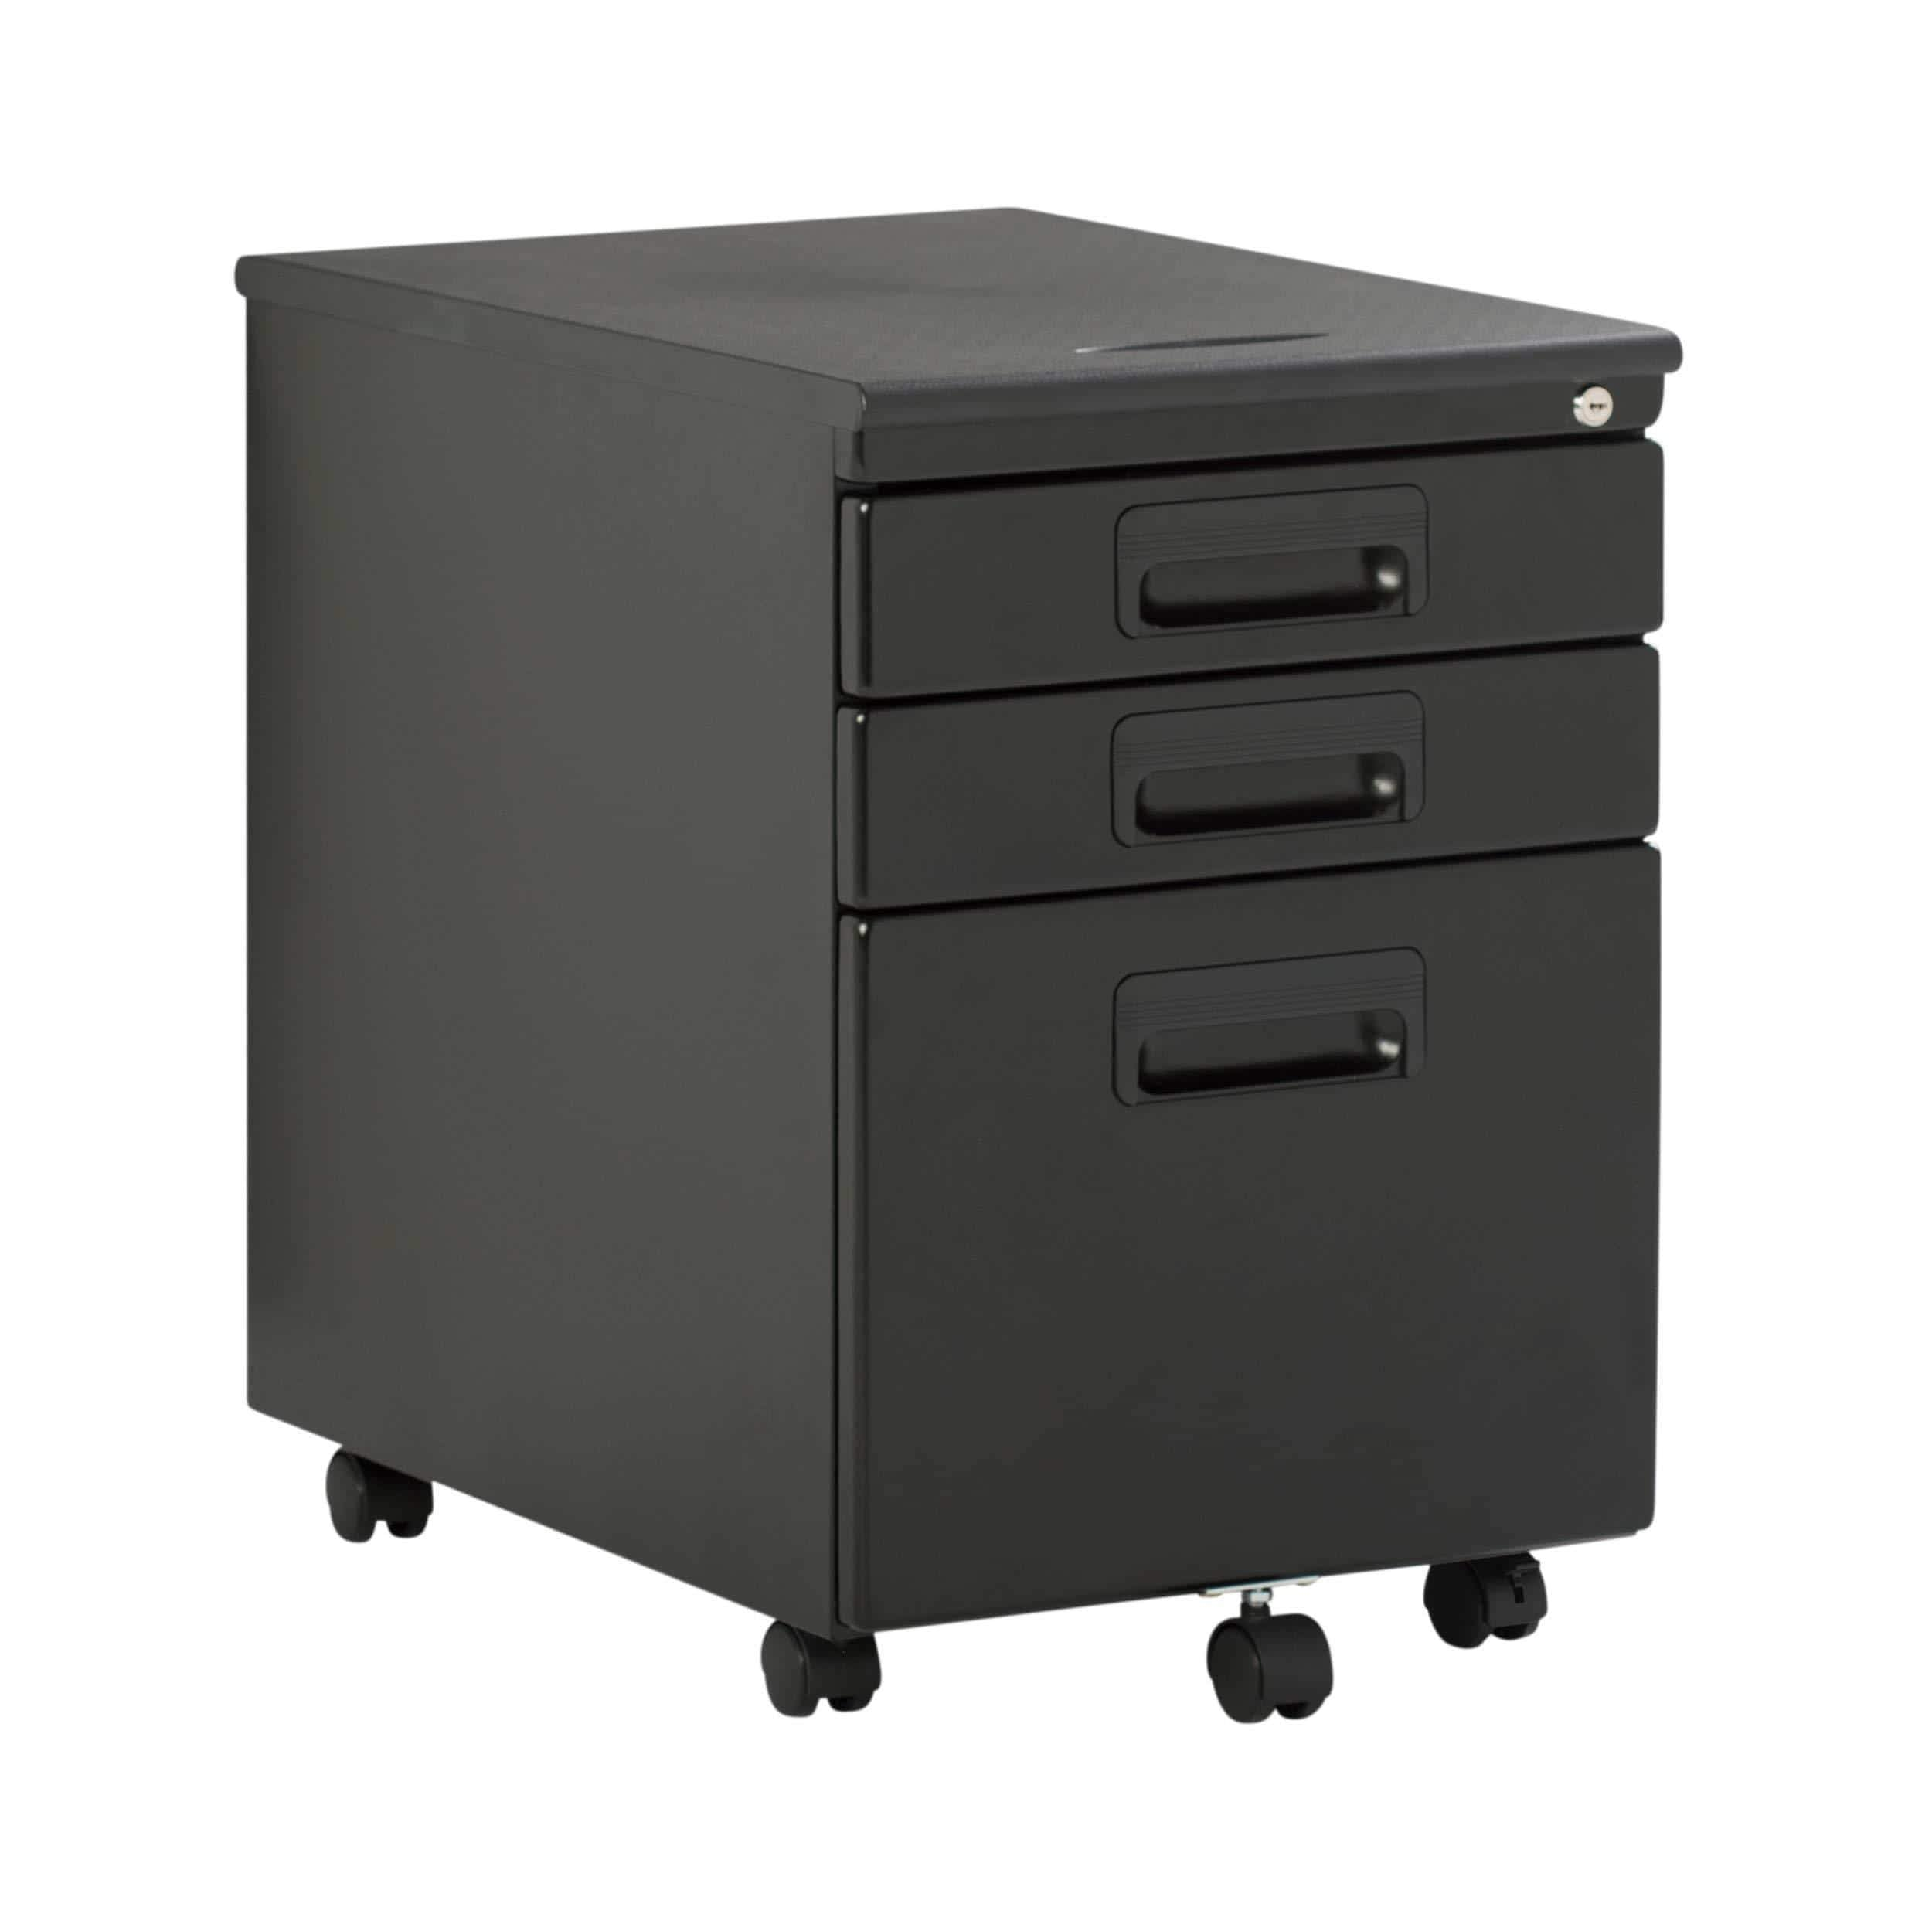 Exclusive craft hobby essentials 62002 metal 3 vertical mobile filing cabinet 15 75 w x 22 d craft supply storage with locking drawers in black